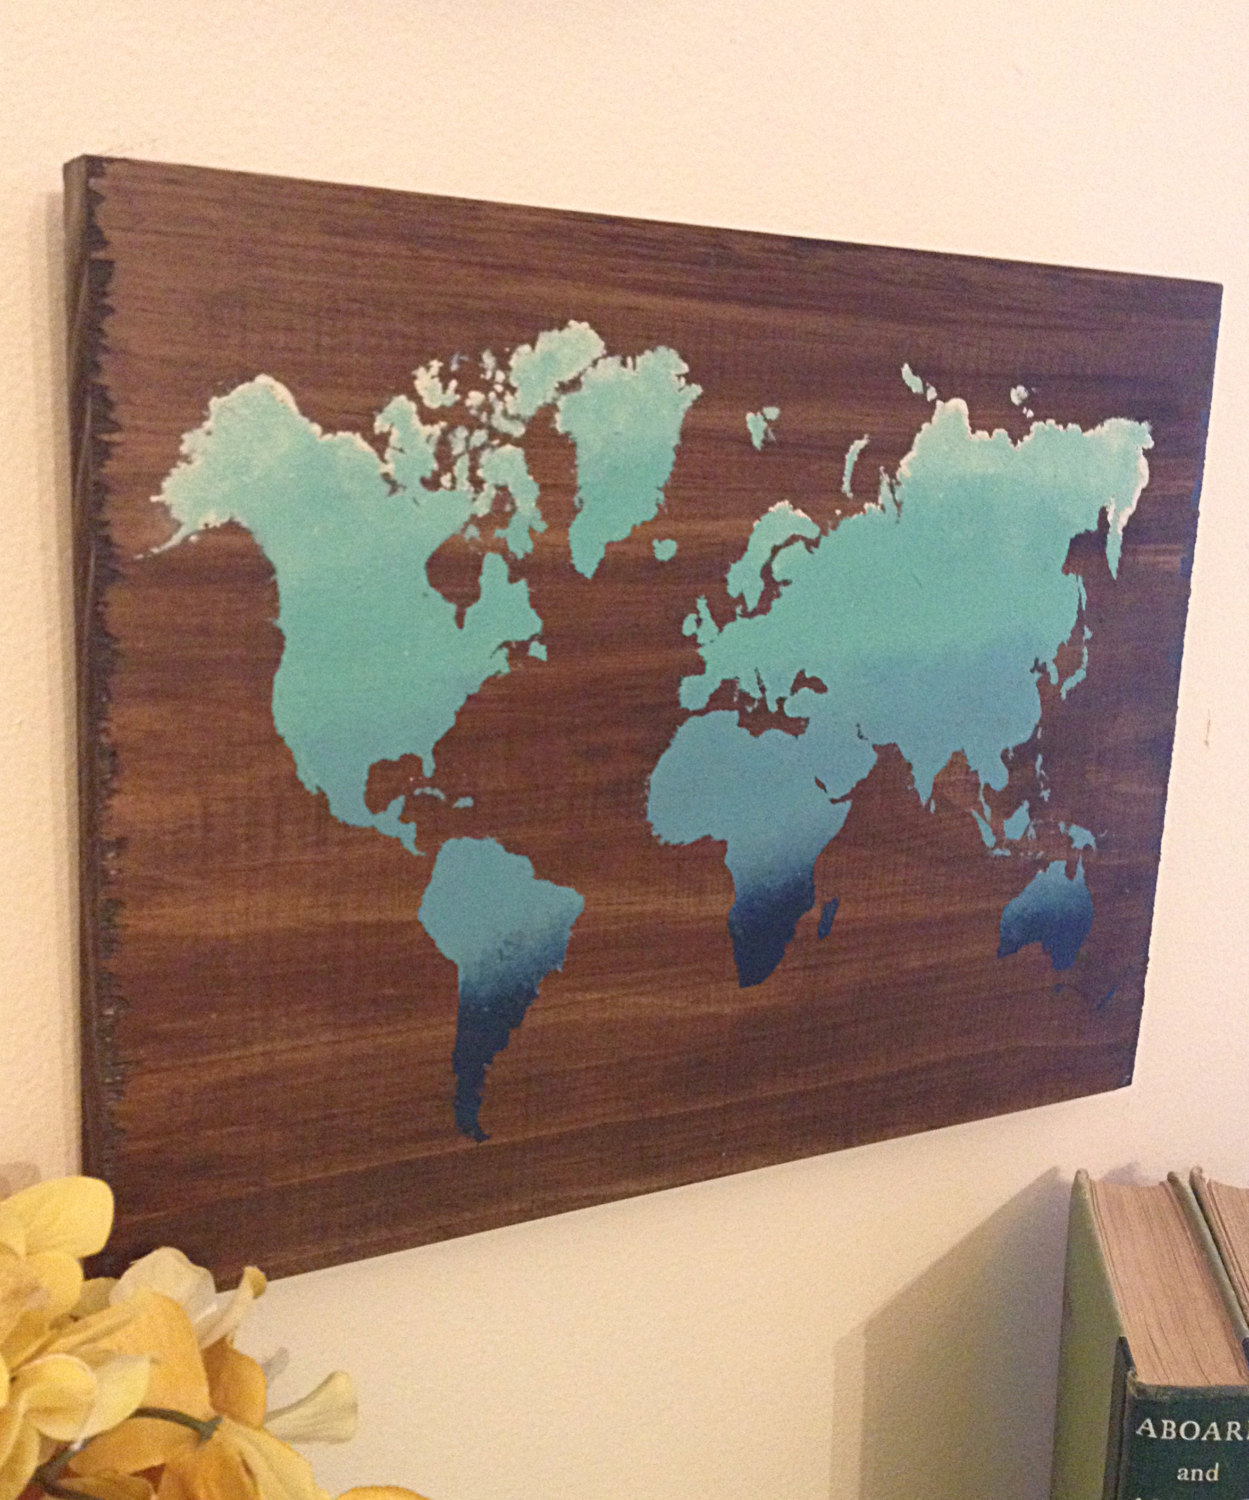 World map art abstract wooden map reclaimed wood world map map world map art abstract wooden map reclaimed wood world map map decor gift ideas rustic wooden sign painted world map gumiabroncs